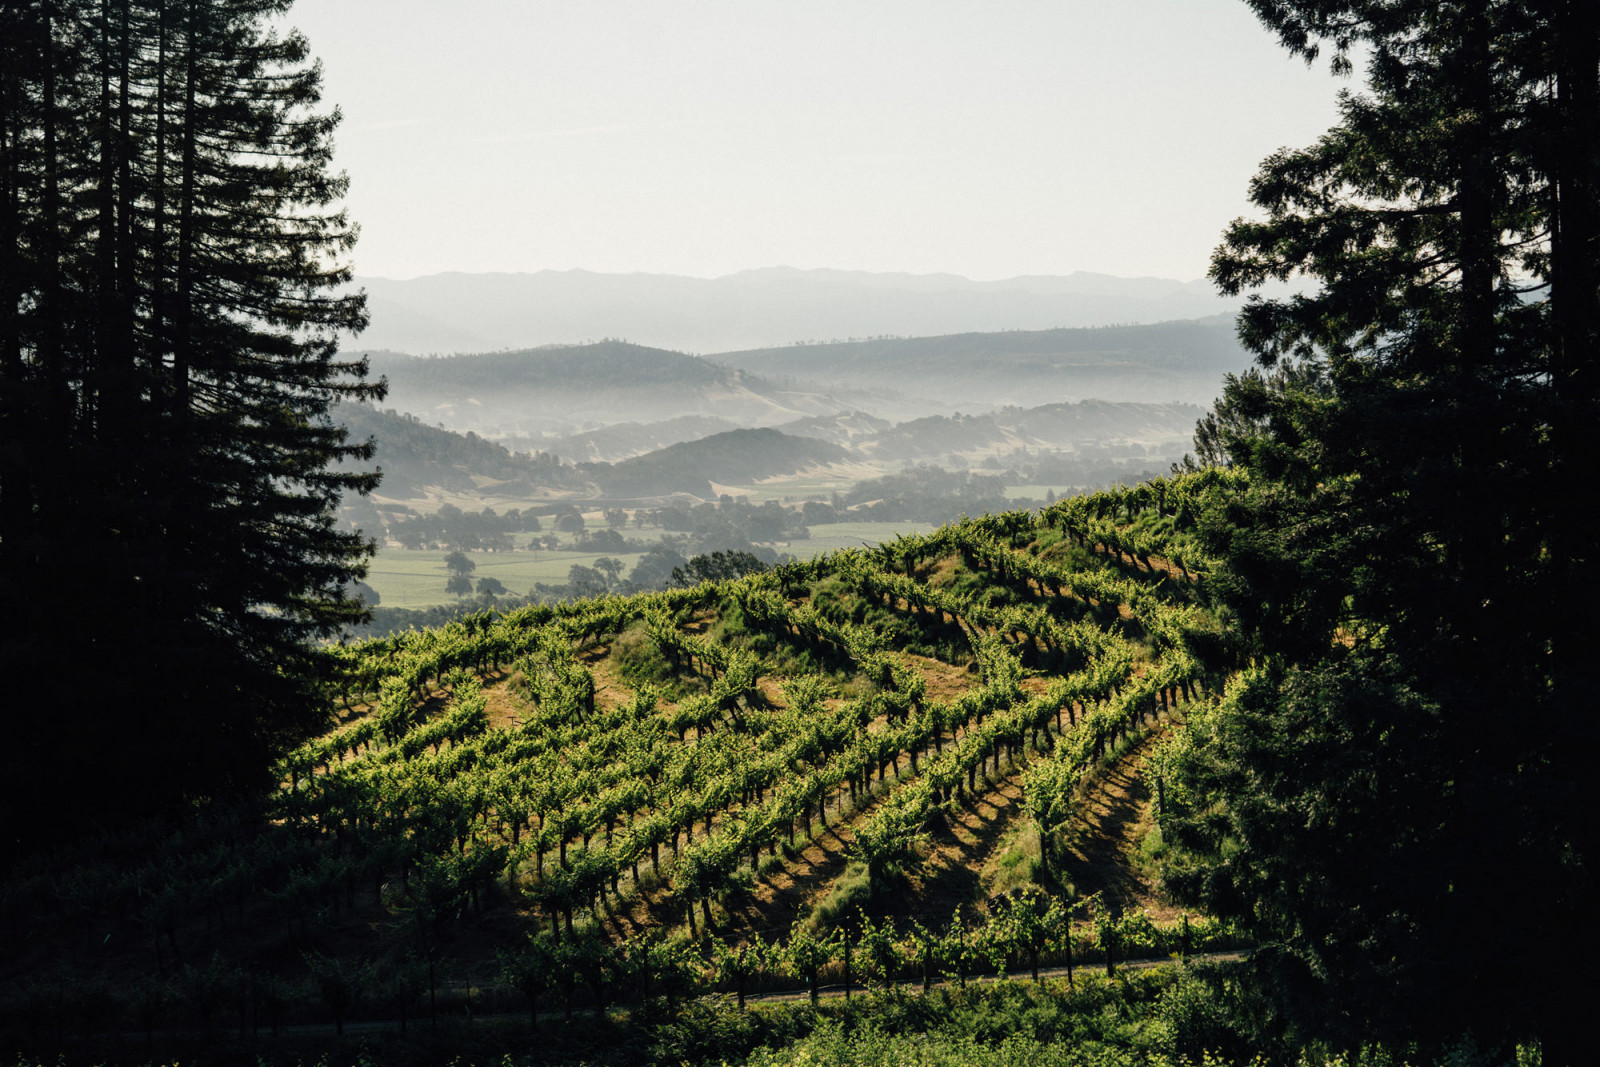 View of the Napa Valley from Ink Grade Vineyard